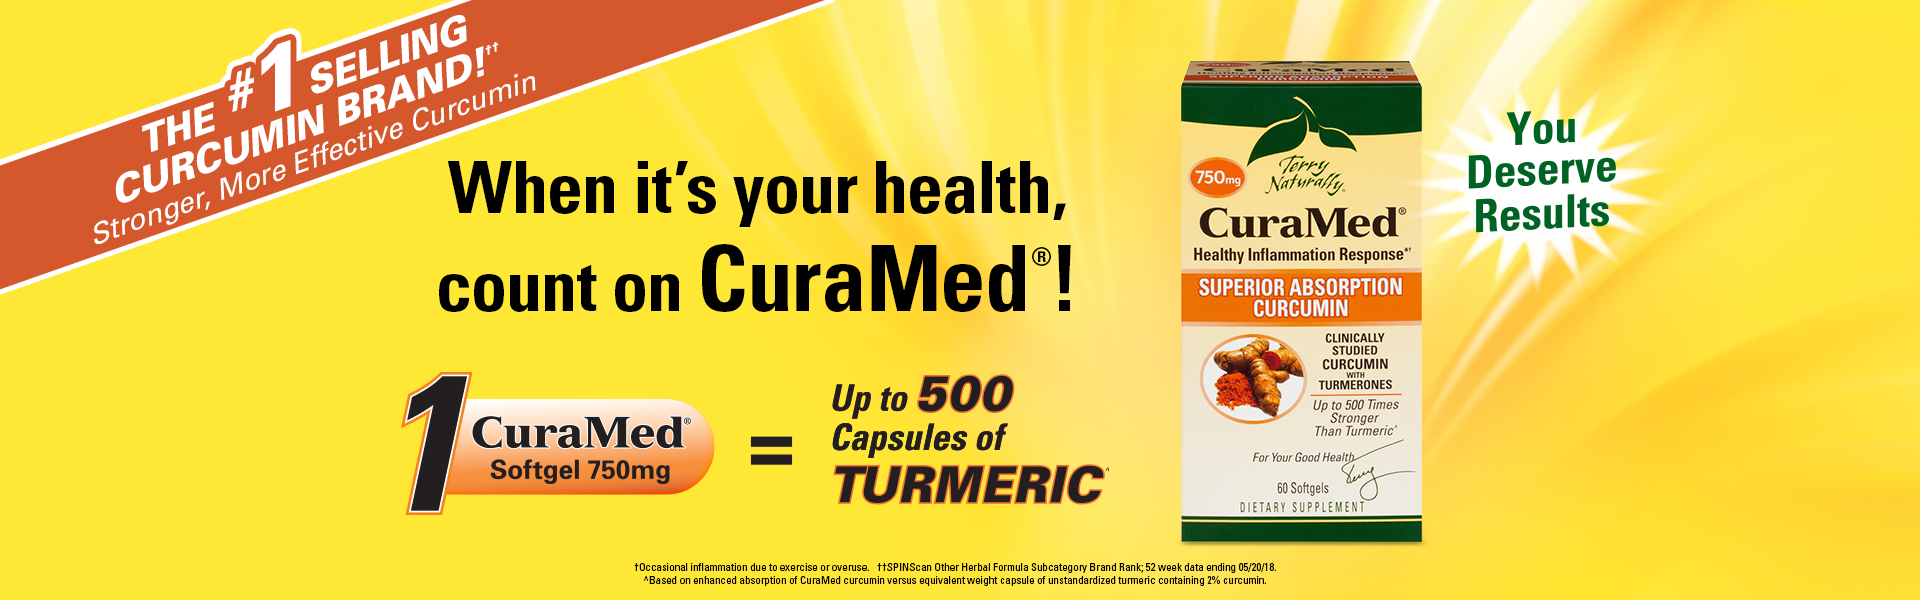 When it's your healthy, count on CuraMed®!